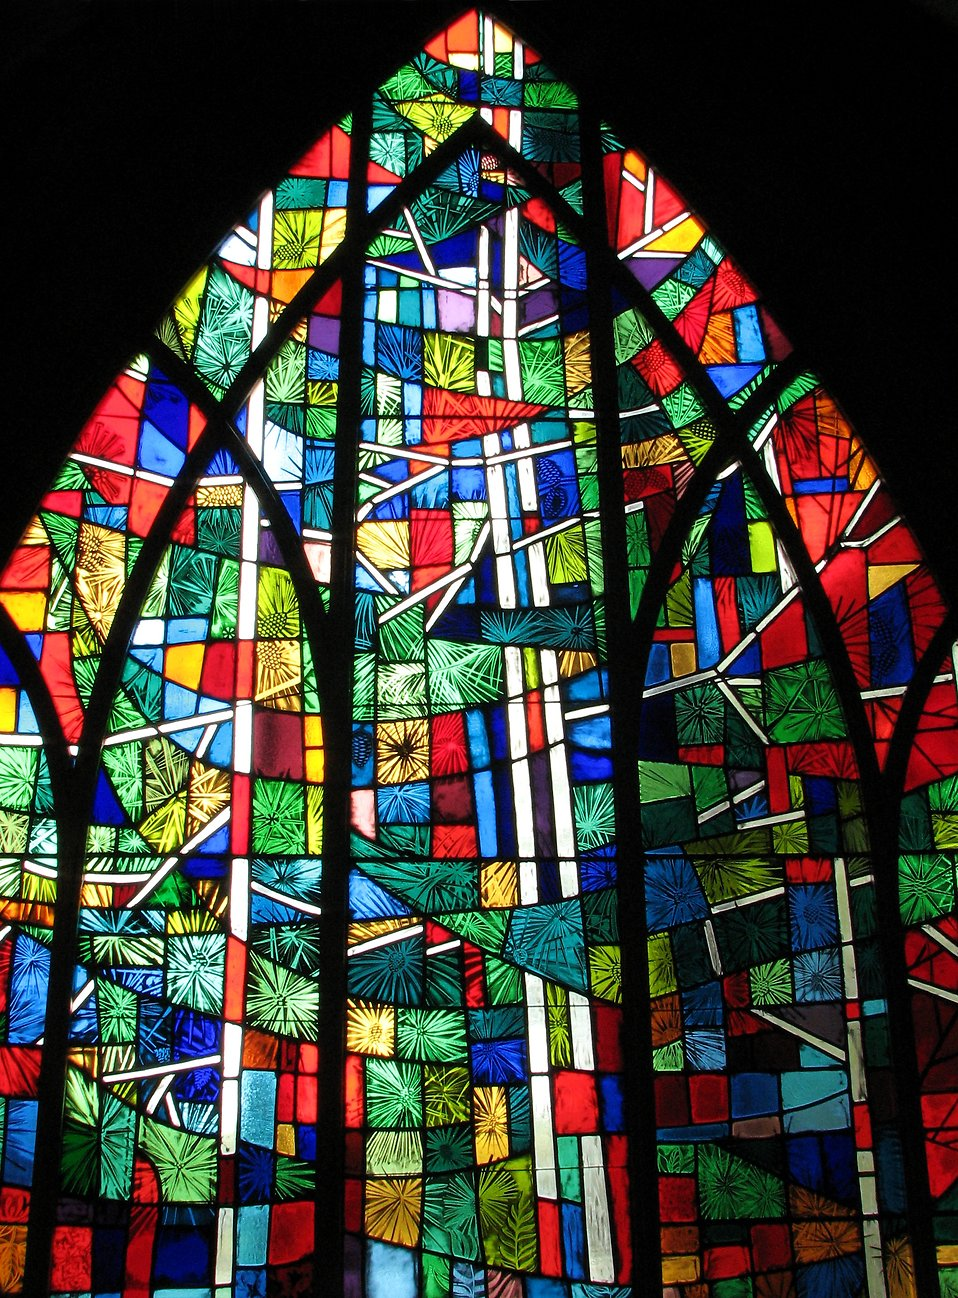 Close-up of a stained glass window : Free Stock Photo